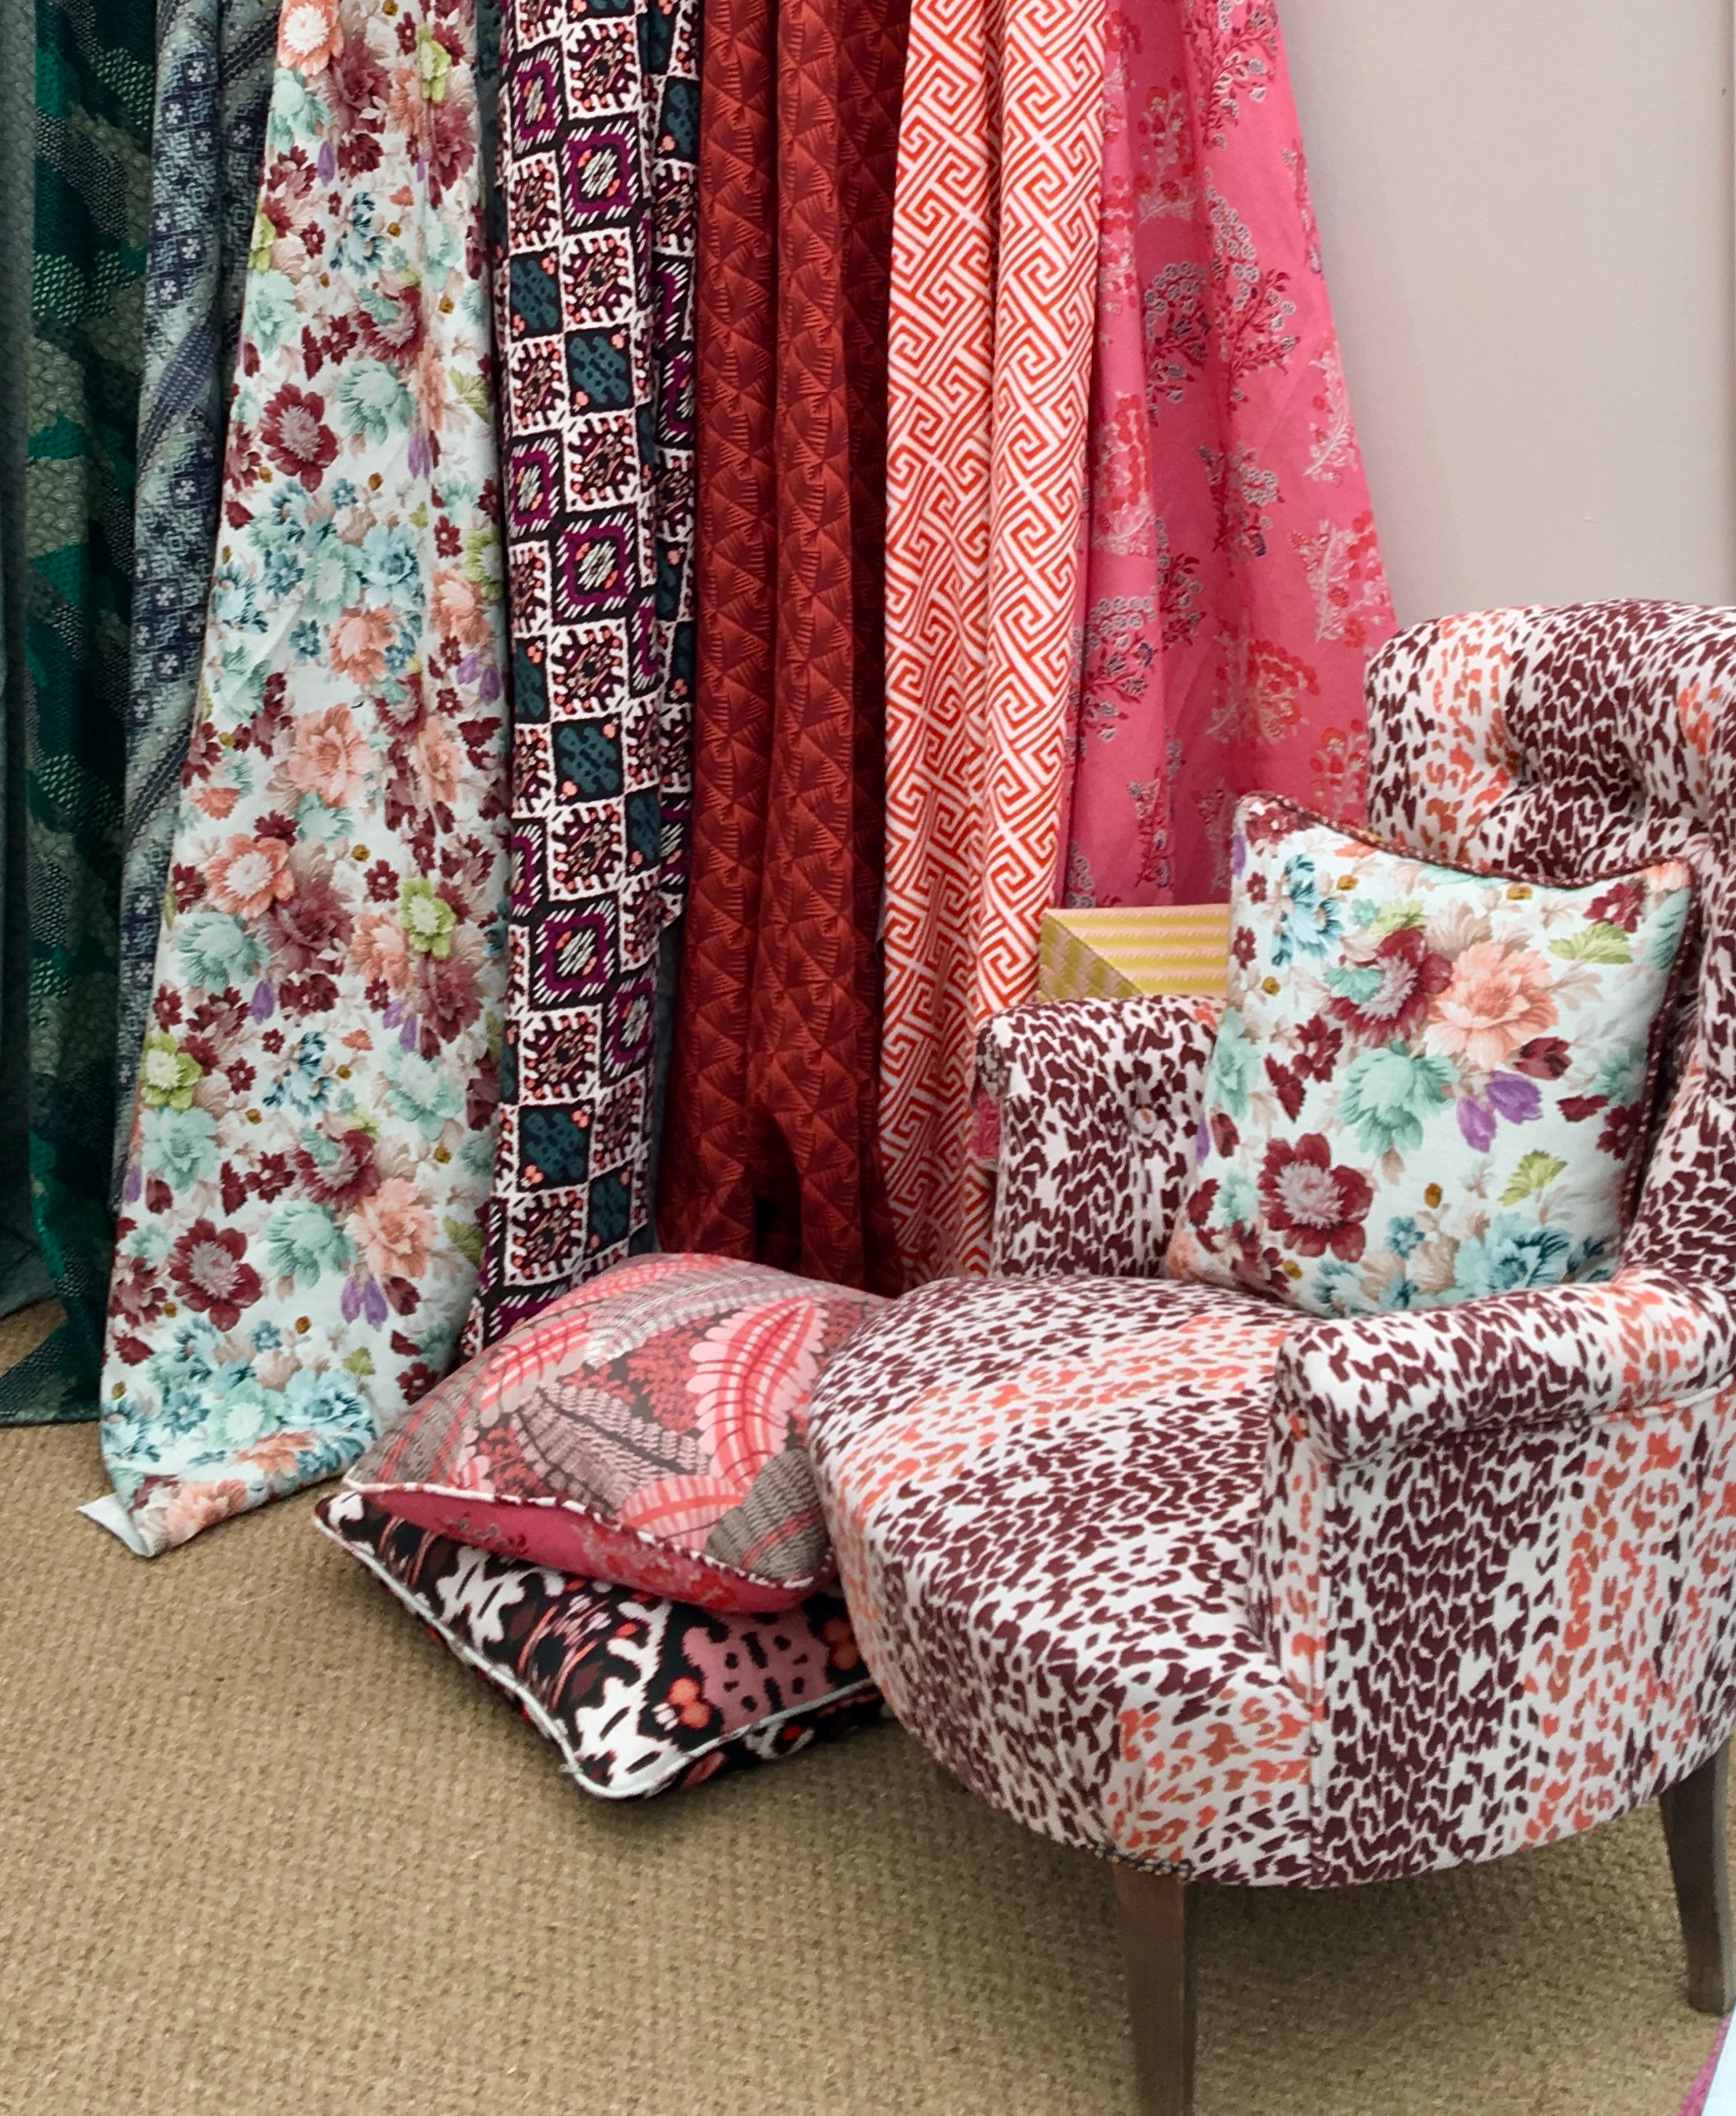 Animal print and Latest fabric designs from textile designers Parker and Jules